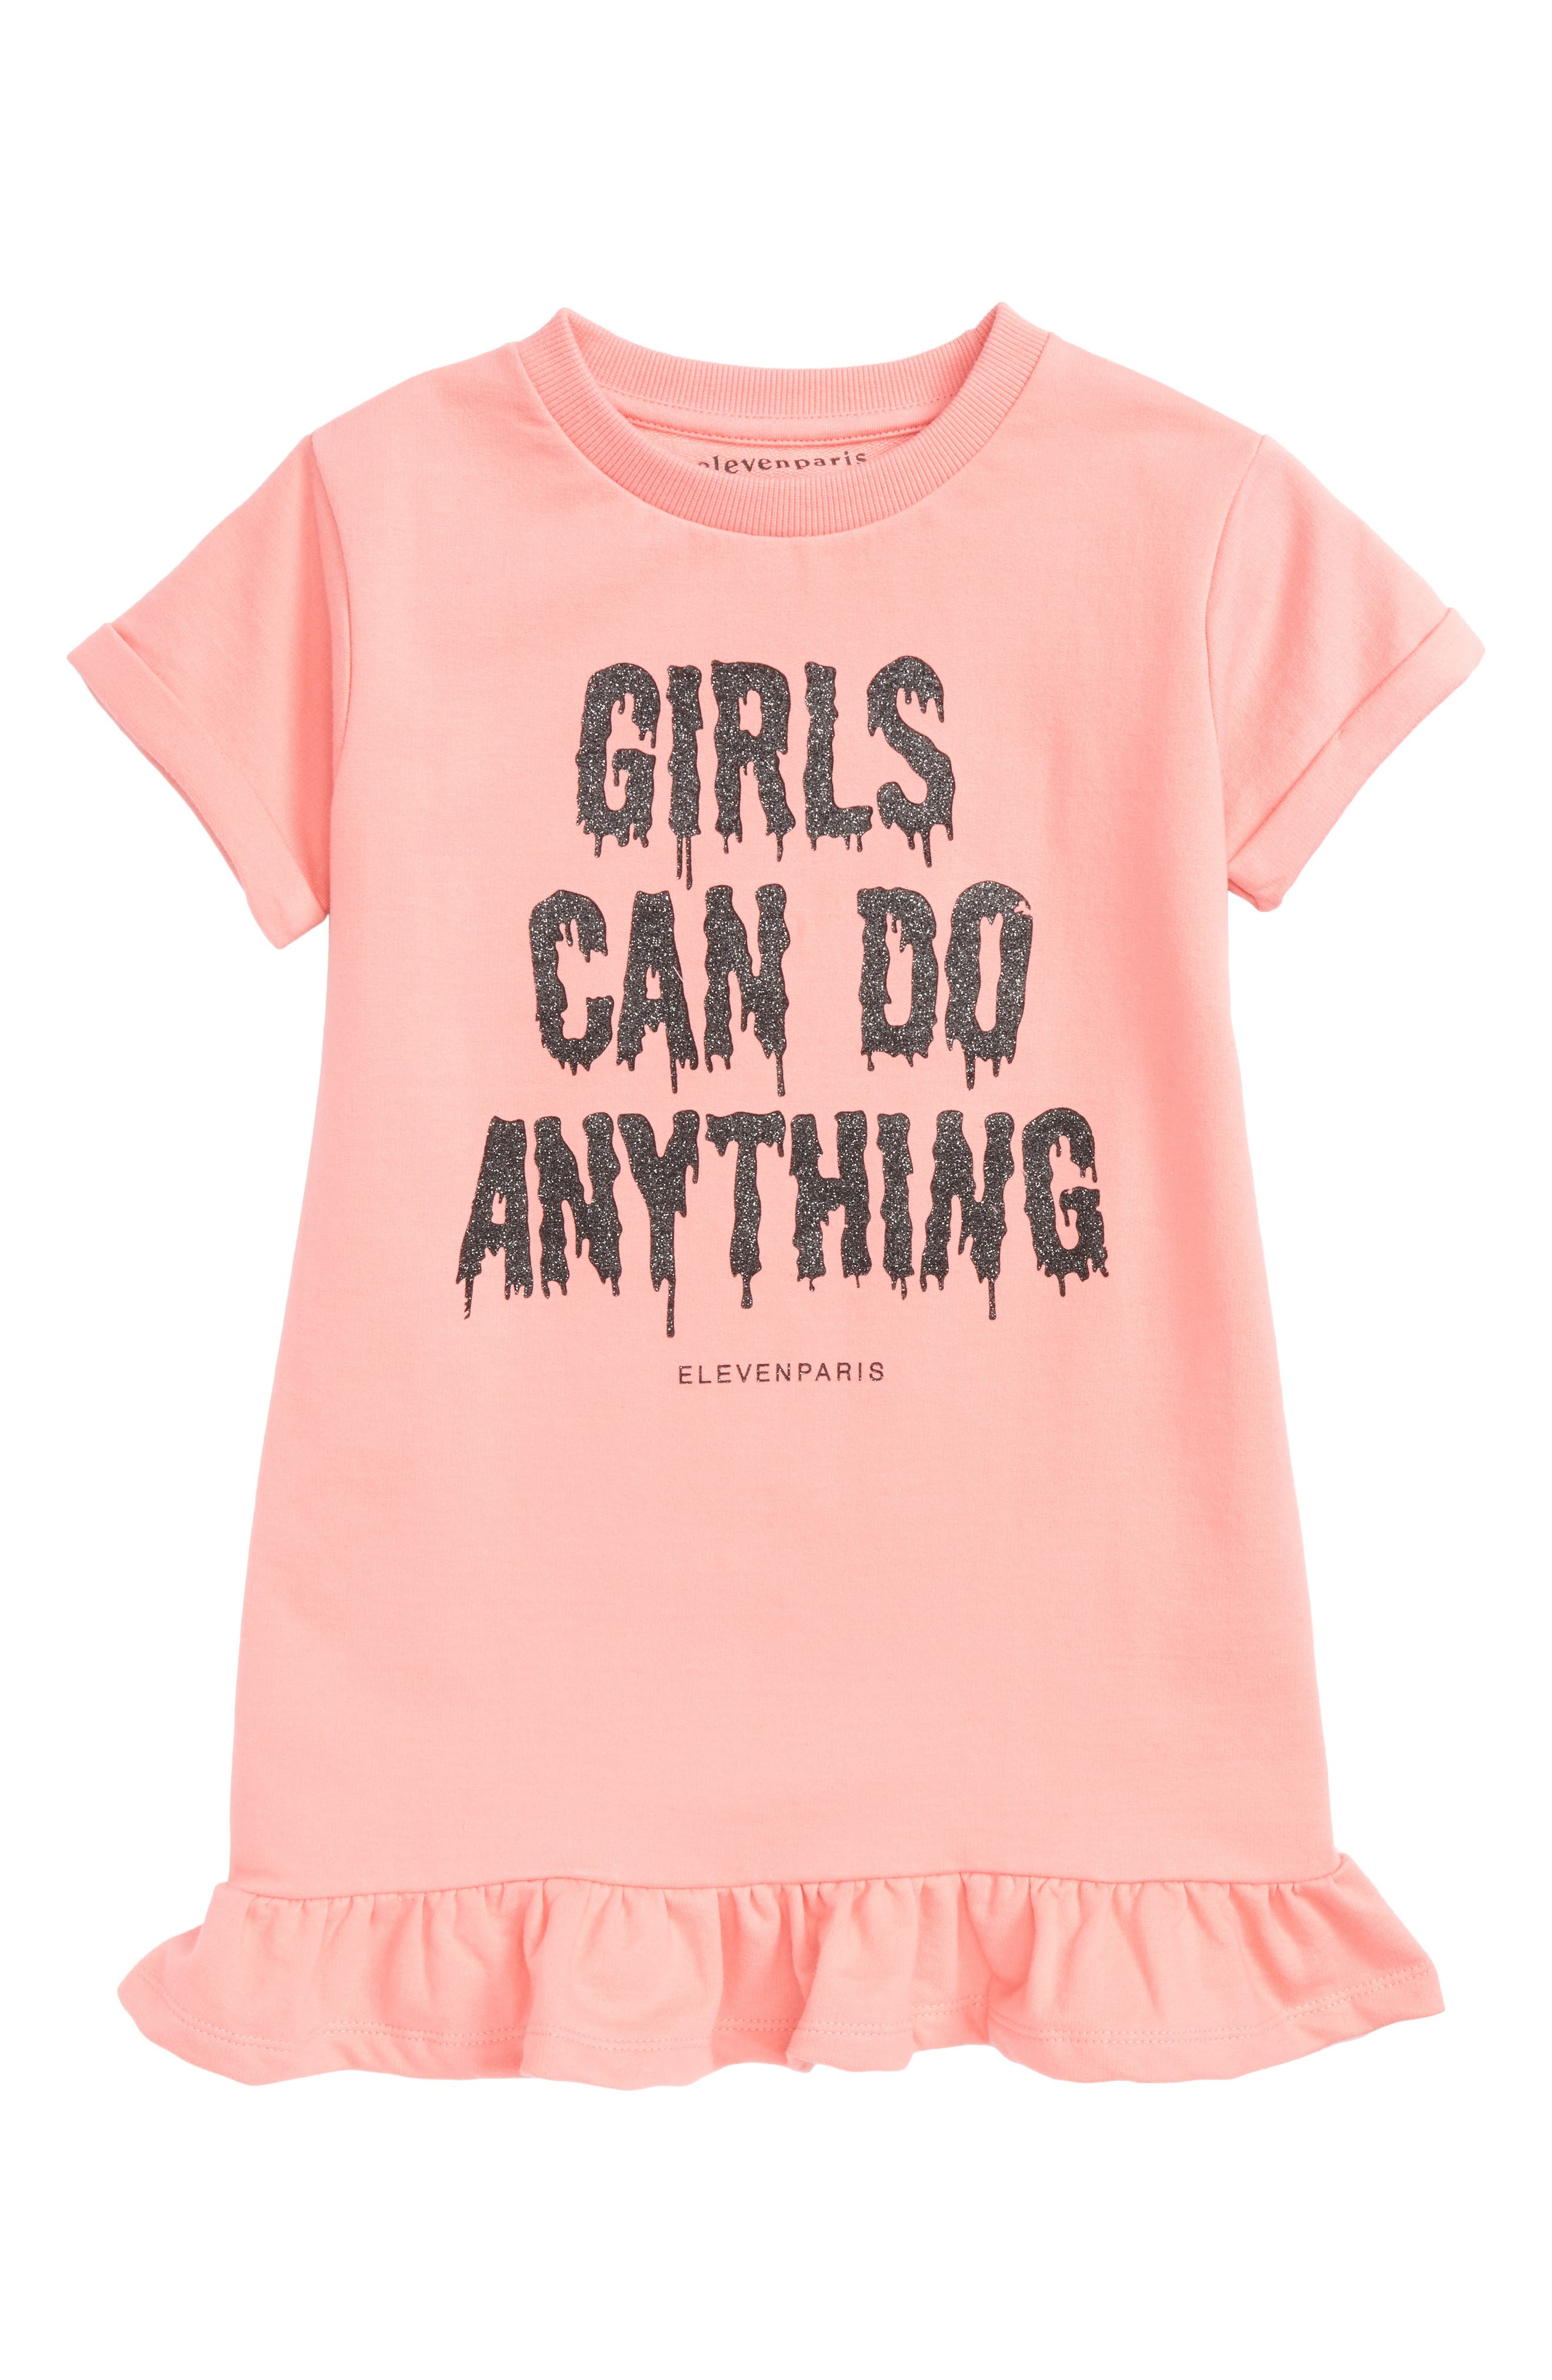 Girls Can Do Anything Graphic Dress,                         Main,                         color, Pink